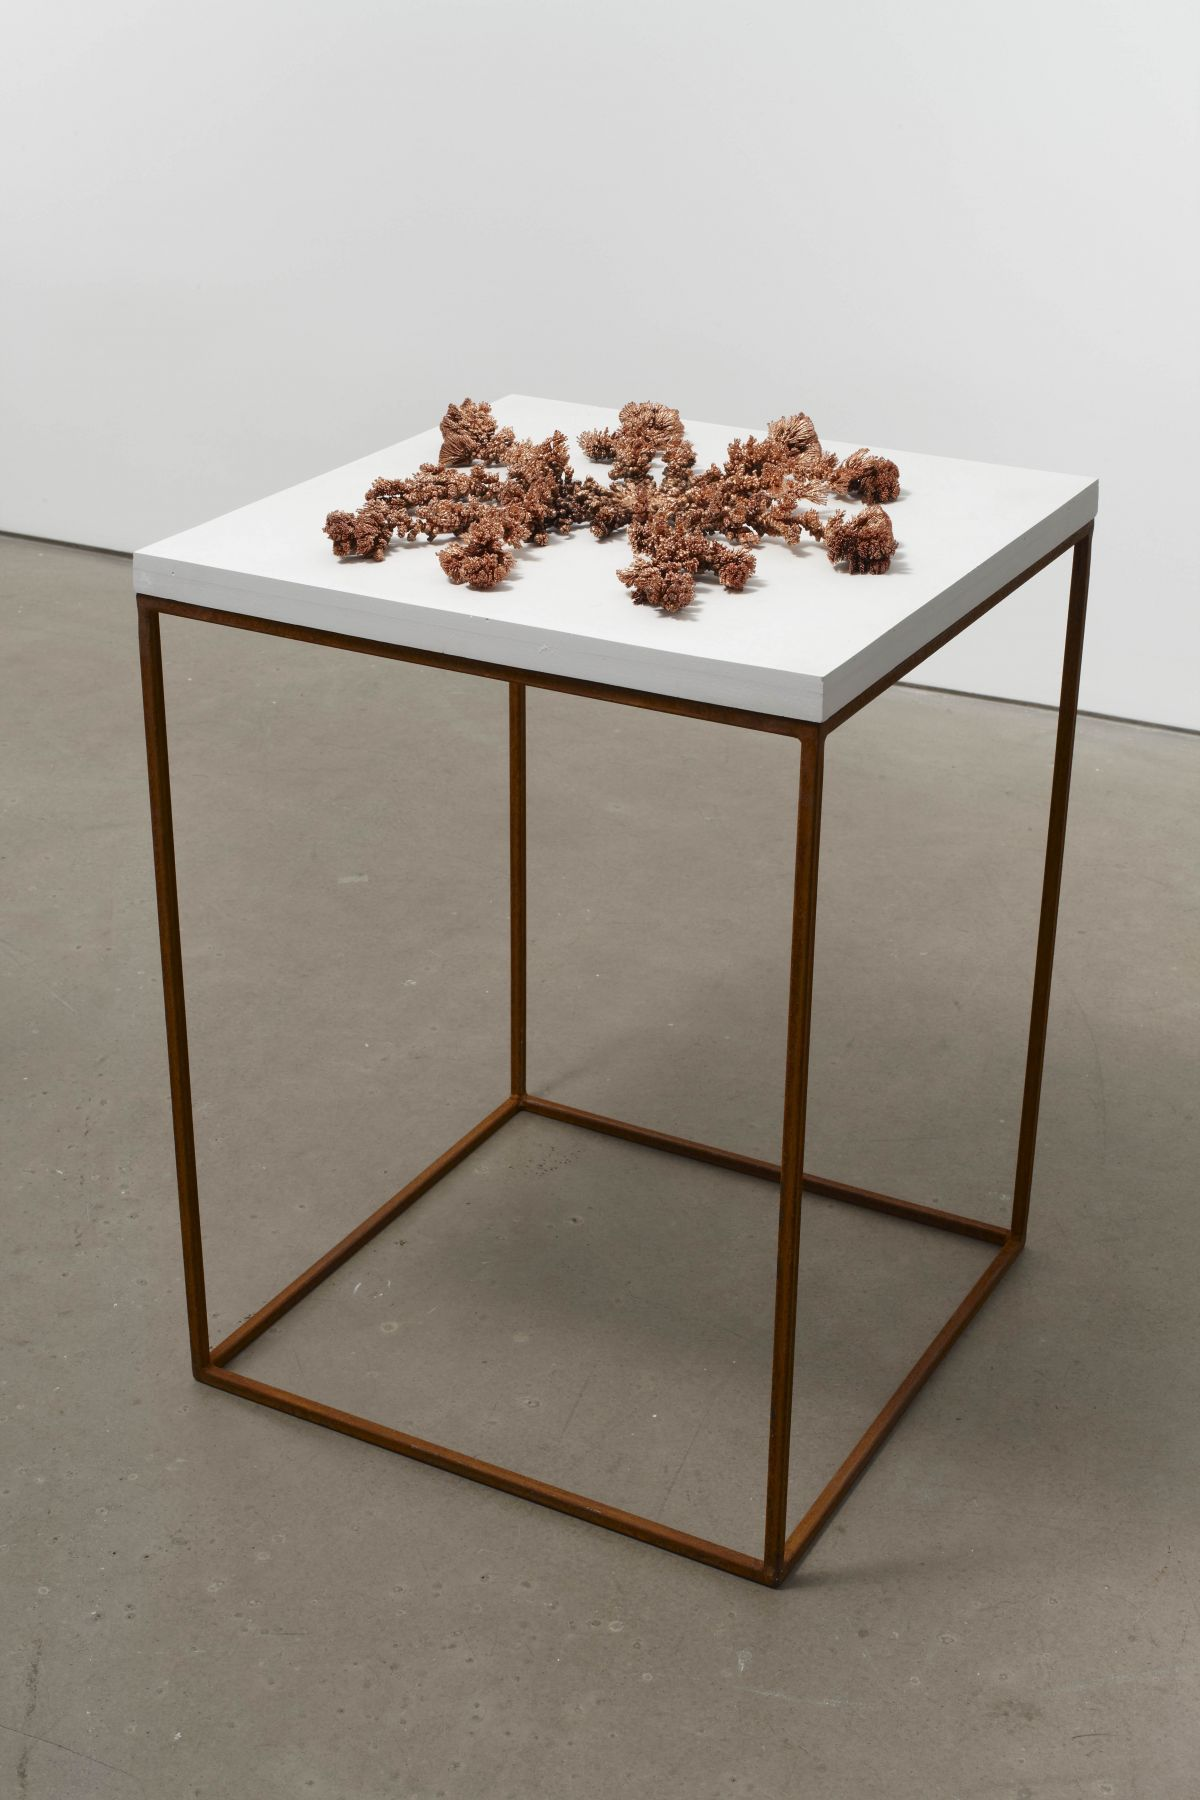 Plated Point 12009-10Copper on plaster3 x 22 x 22 inches (7.6 x 55.9 x 55.0 cm)HB 22